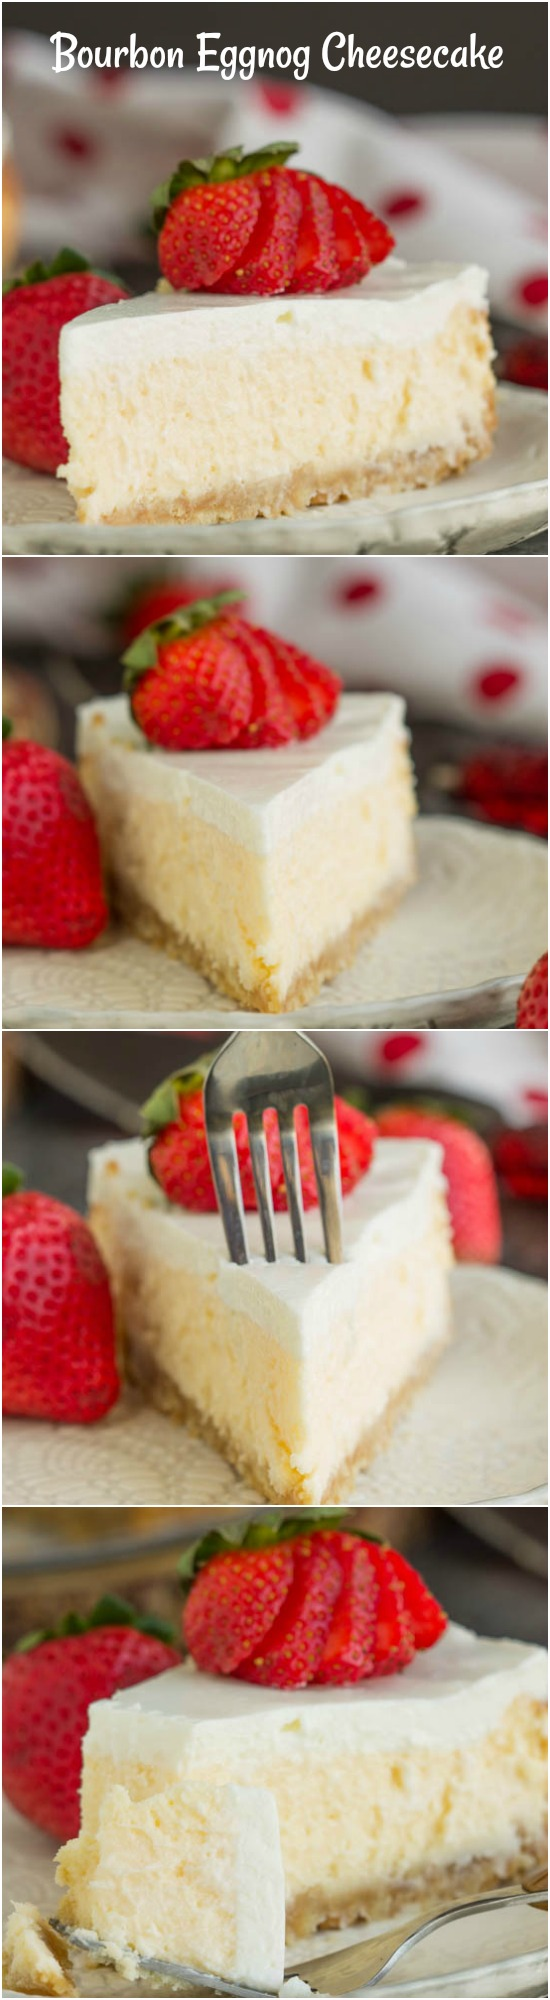 Woodford Reserve Bourbon Eggnog Cheesecake with Vanilla Wafer Crust recipe bakes rich eggnog and a shot of bourbon into your favorite smooth and creamy cheesecake. Your two favorite holiday beverages in dessert form!